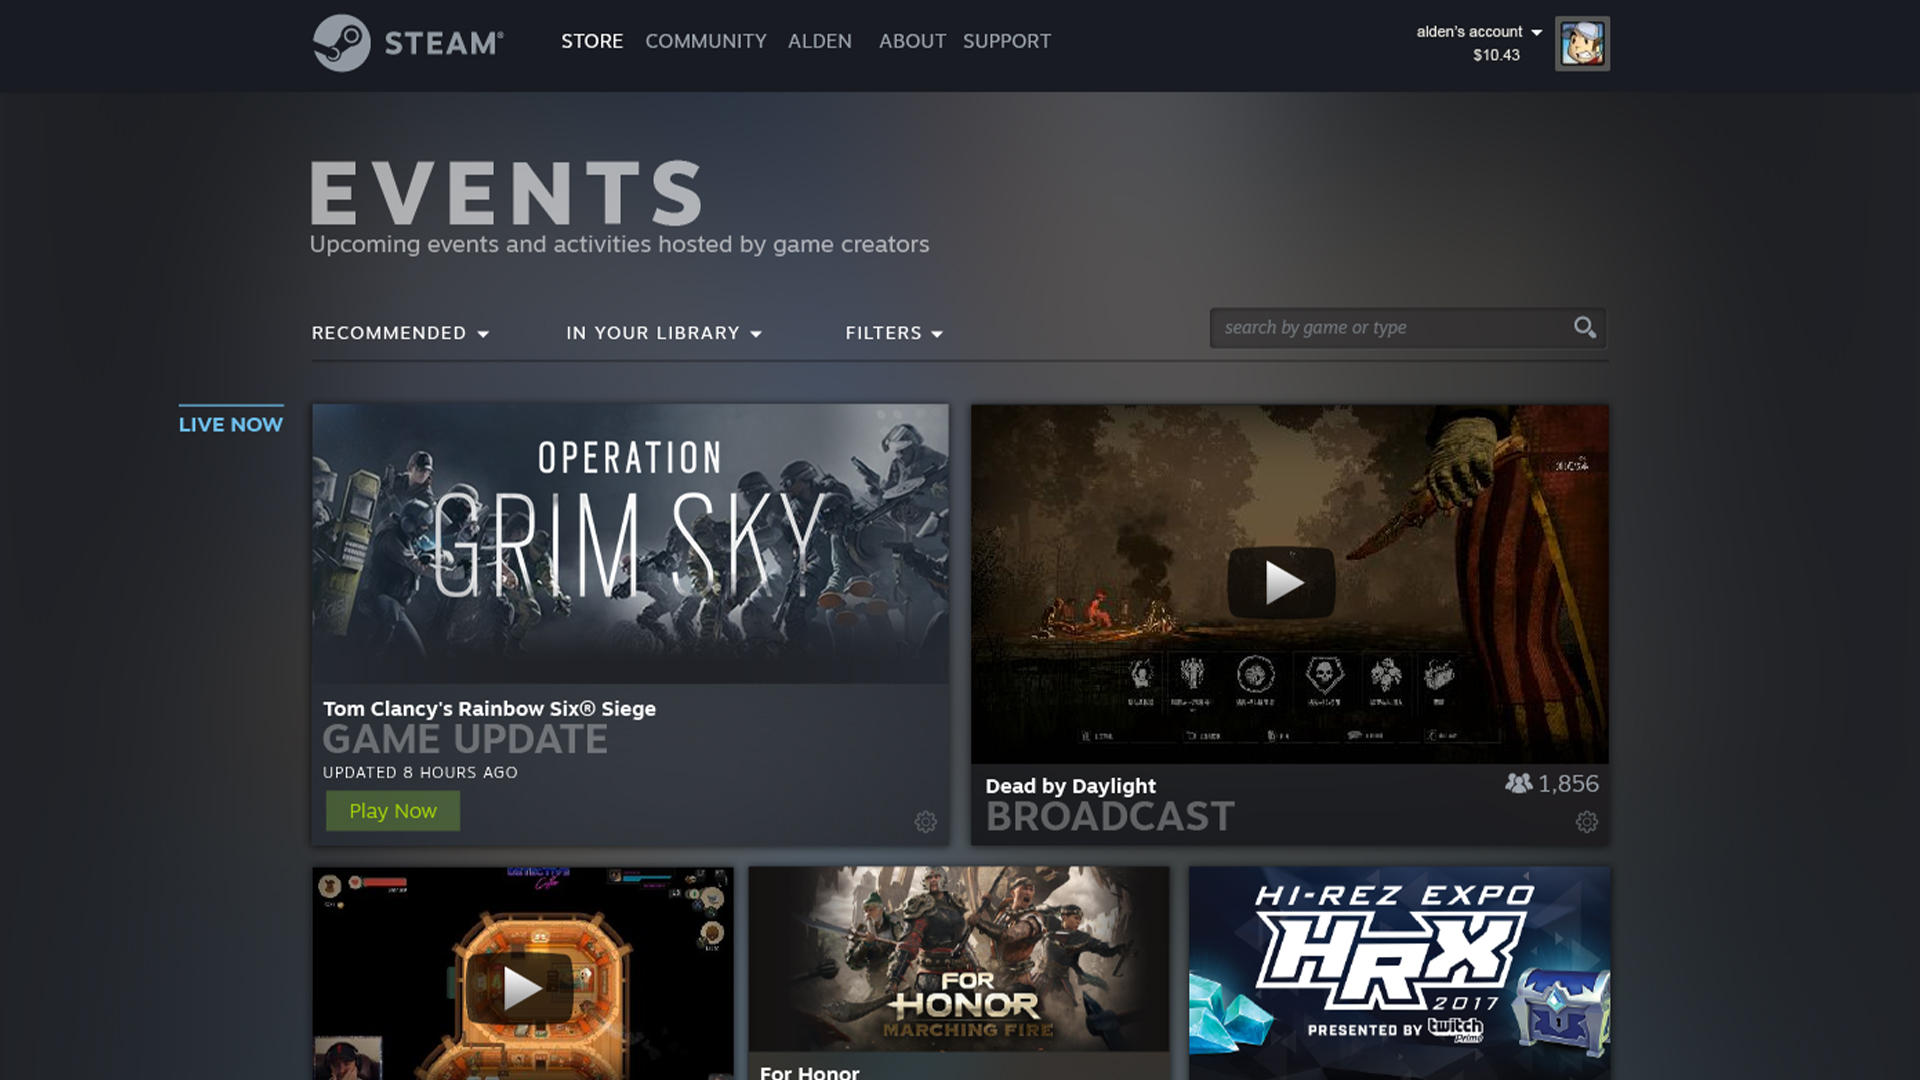 Steam Events